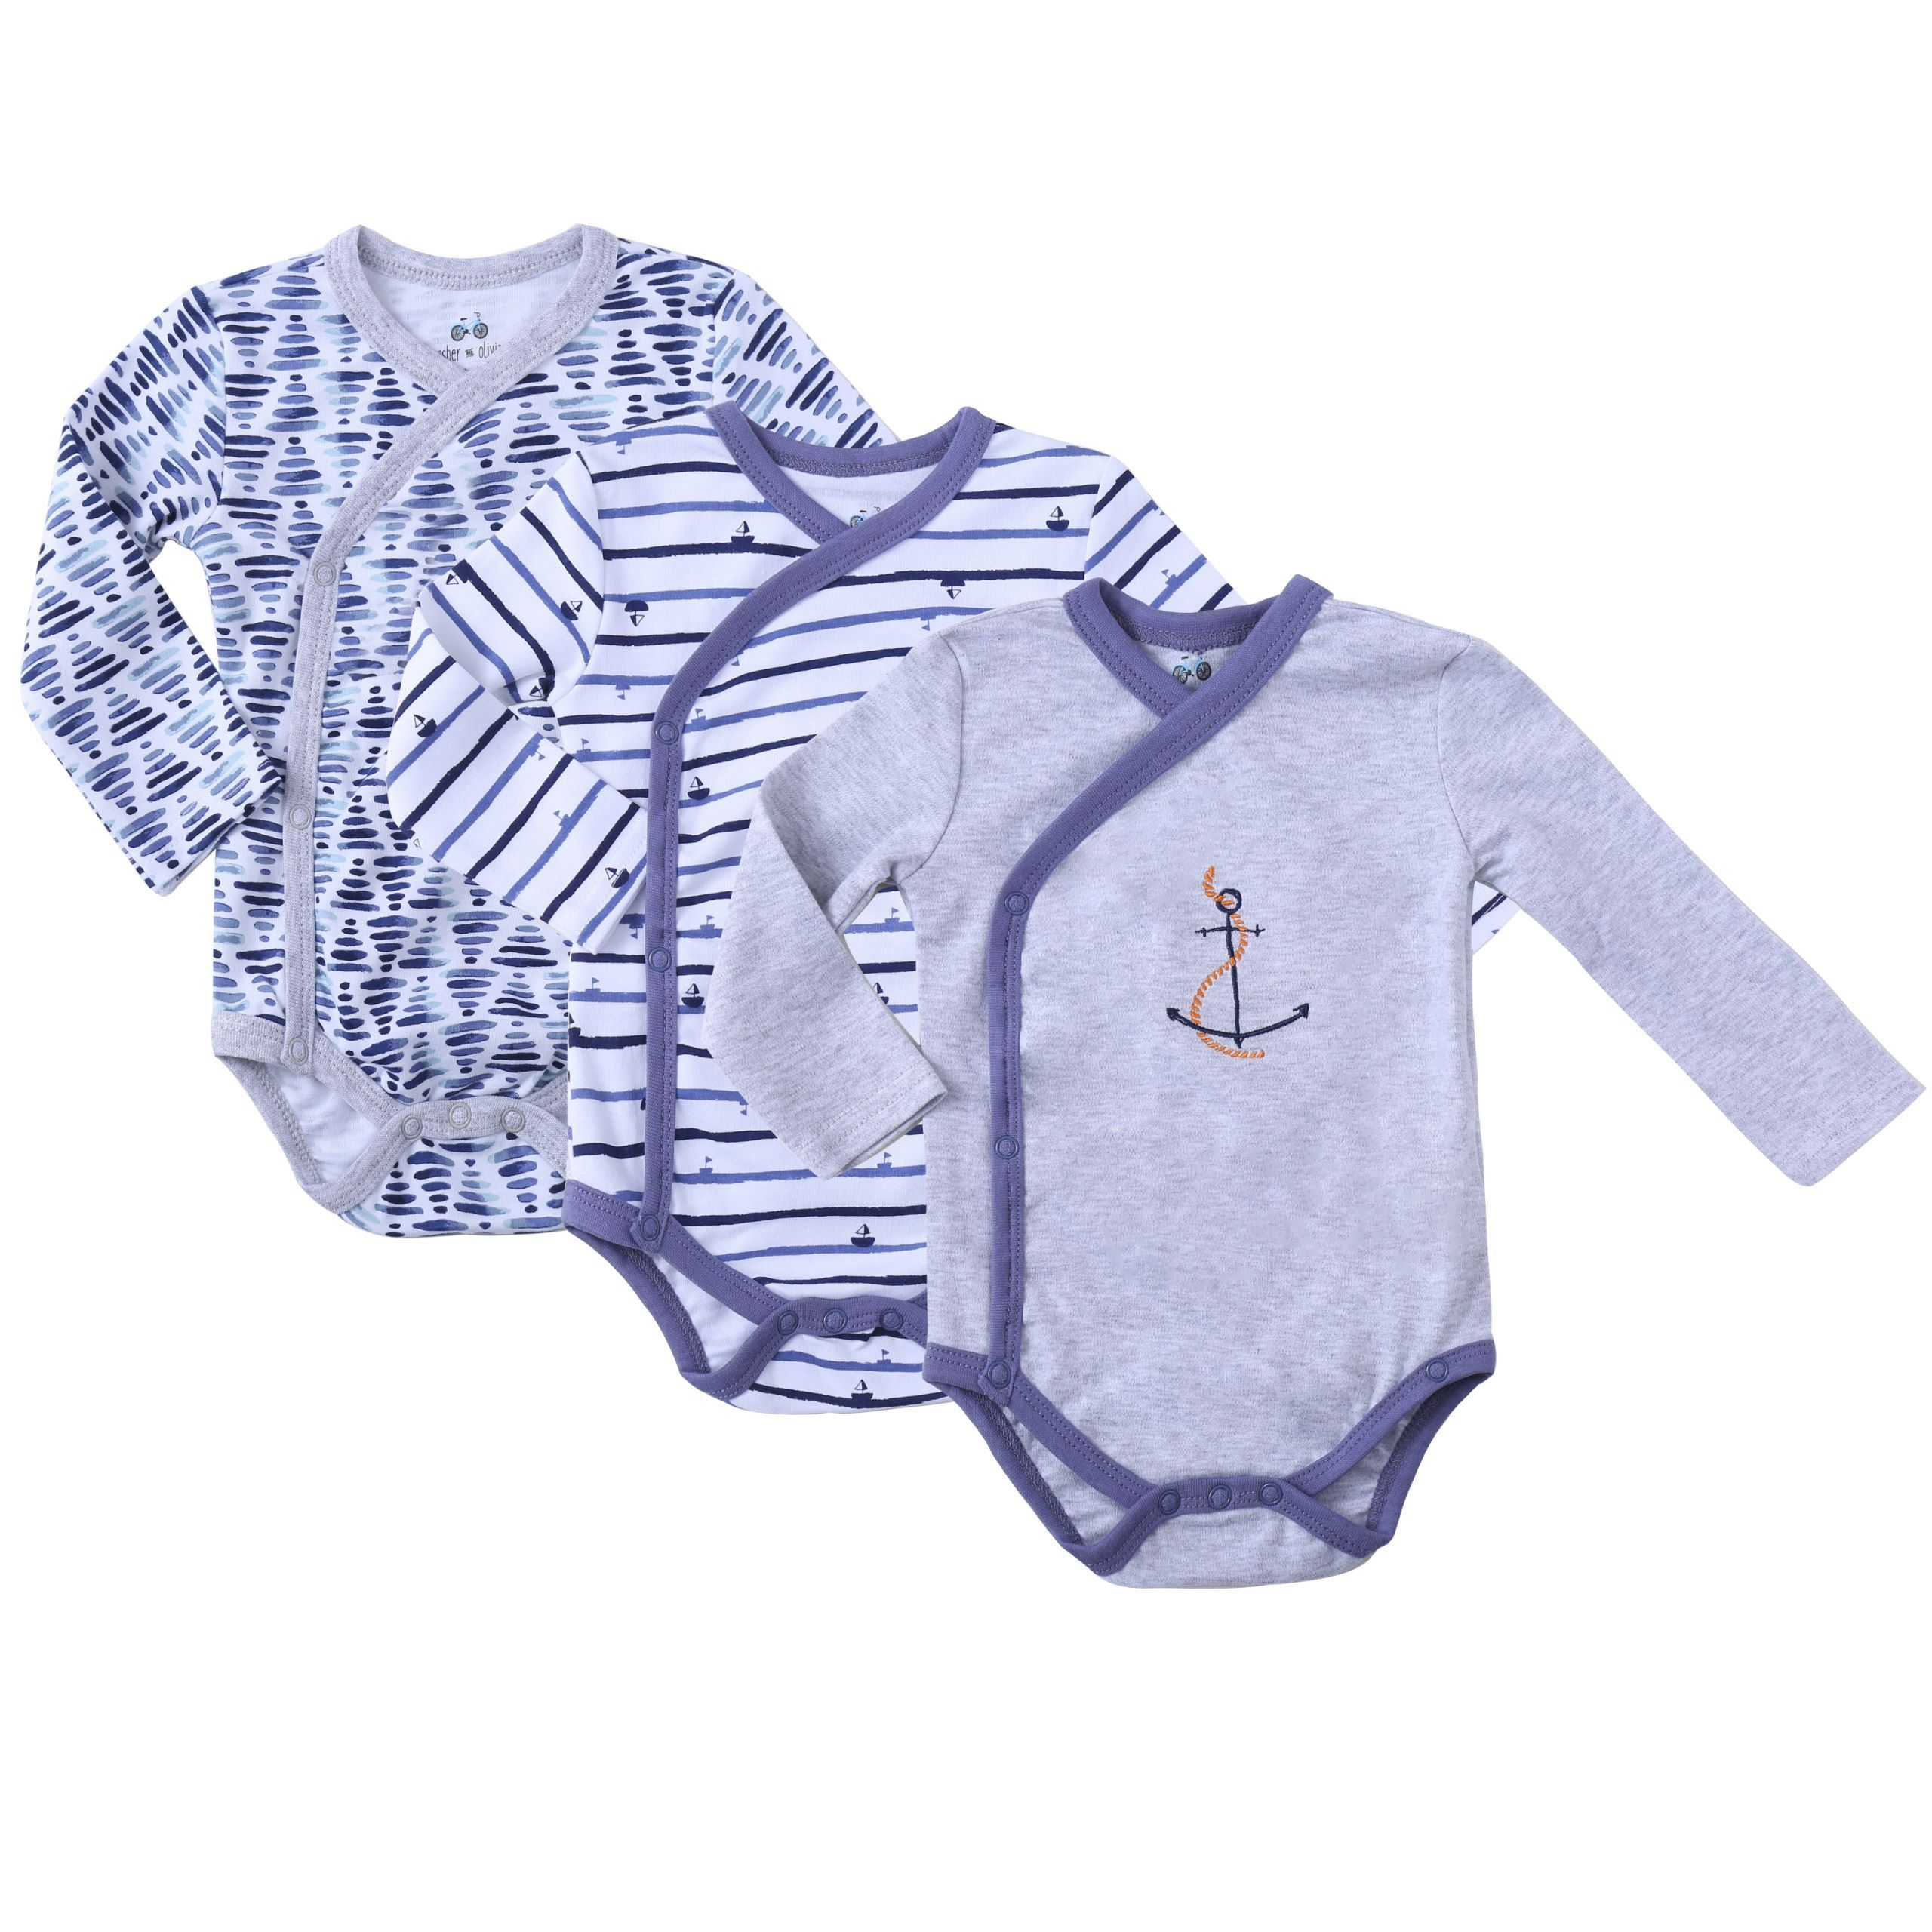 Clothes Baby Kimono Side Snap Onesies Boy Long Sleeve Bodysuit Blue